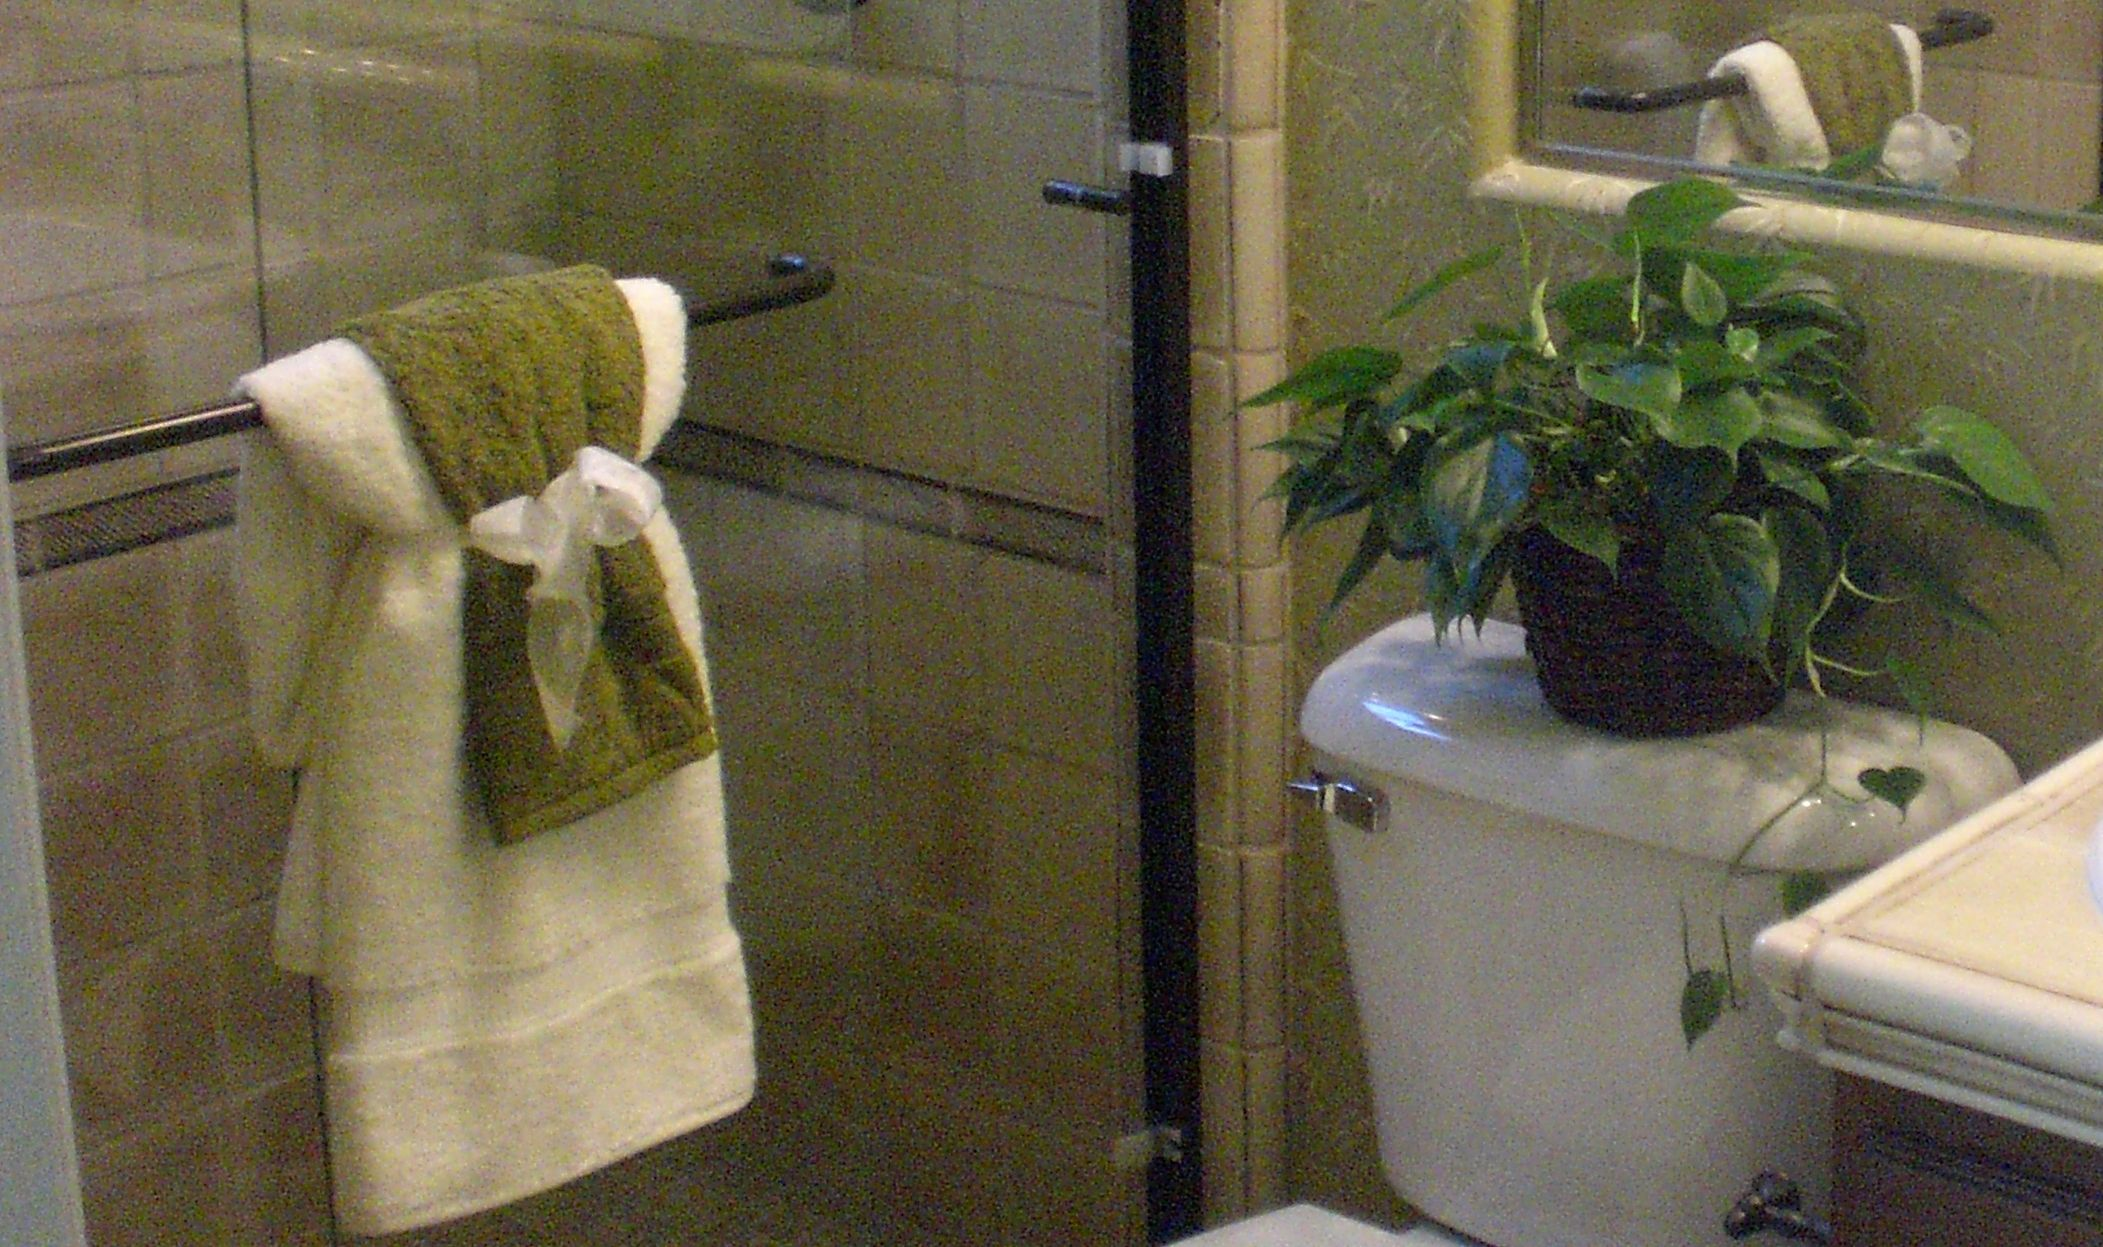 Towel Decorations Everyday Items Towels And Bathroom - Bath towel sets for small bathroom ideas